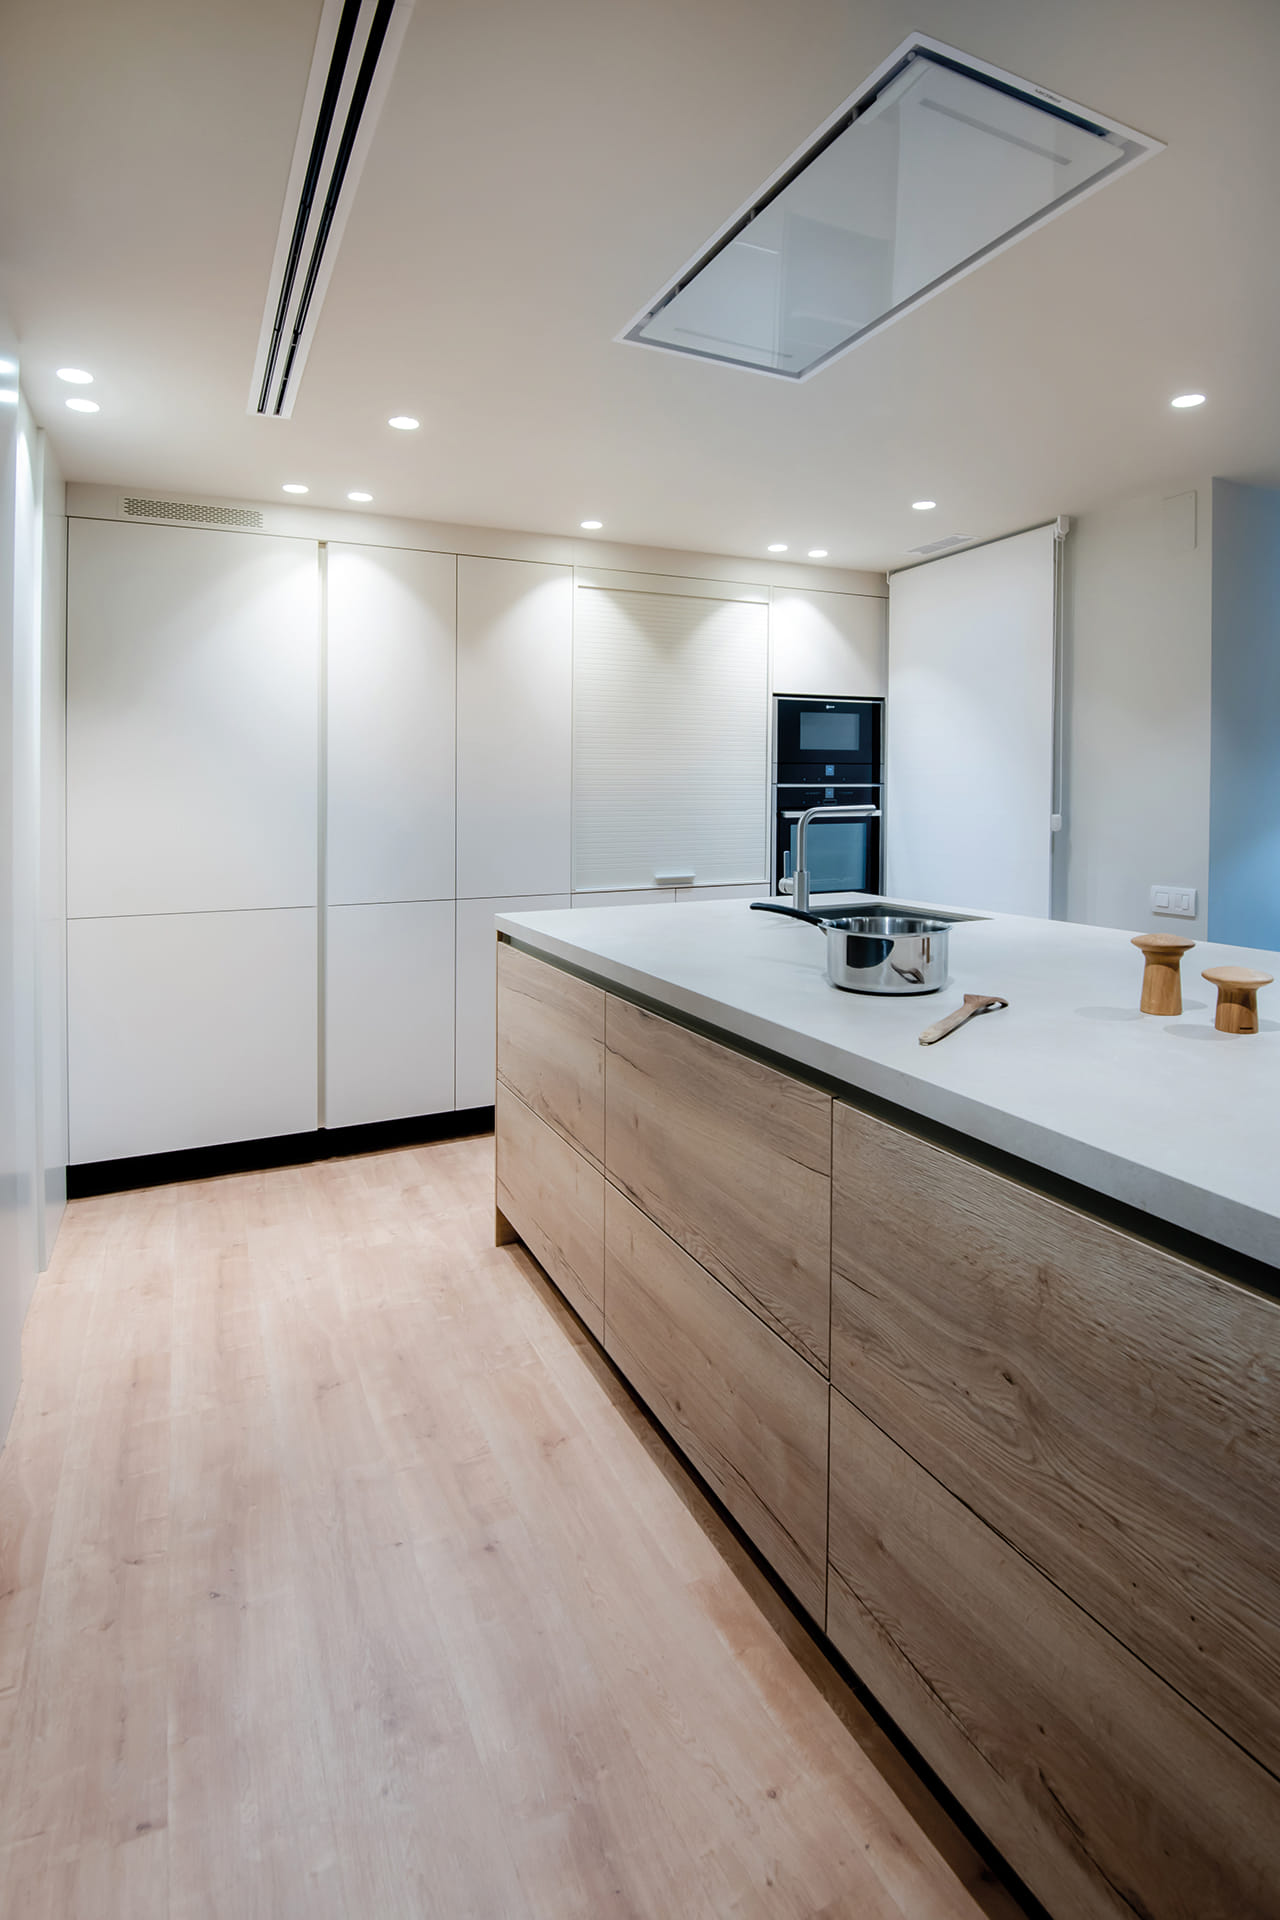 Santos kitchen with peninsula in white and wood